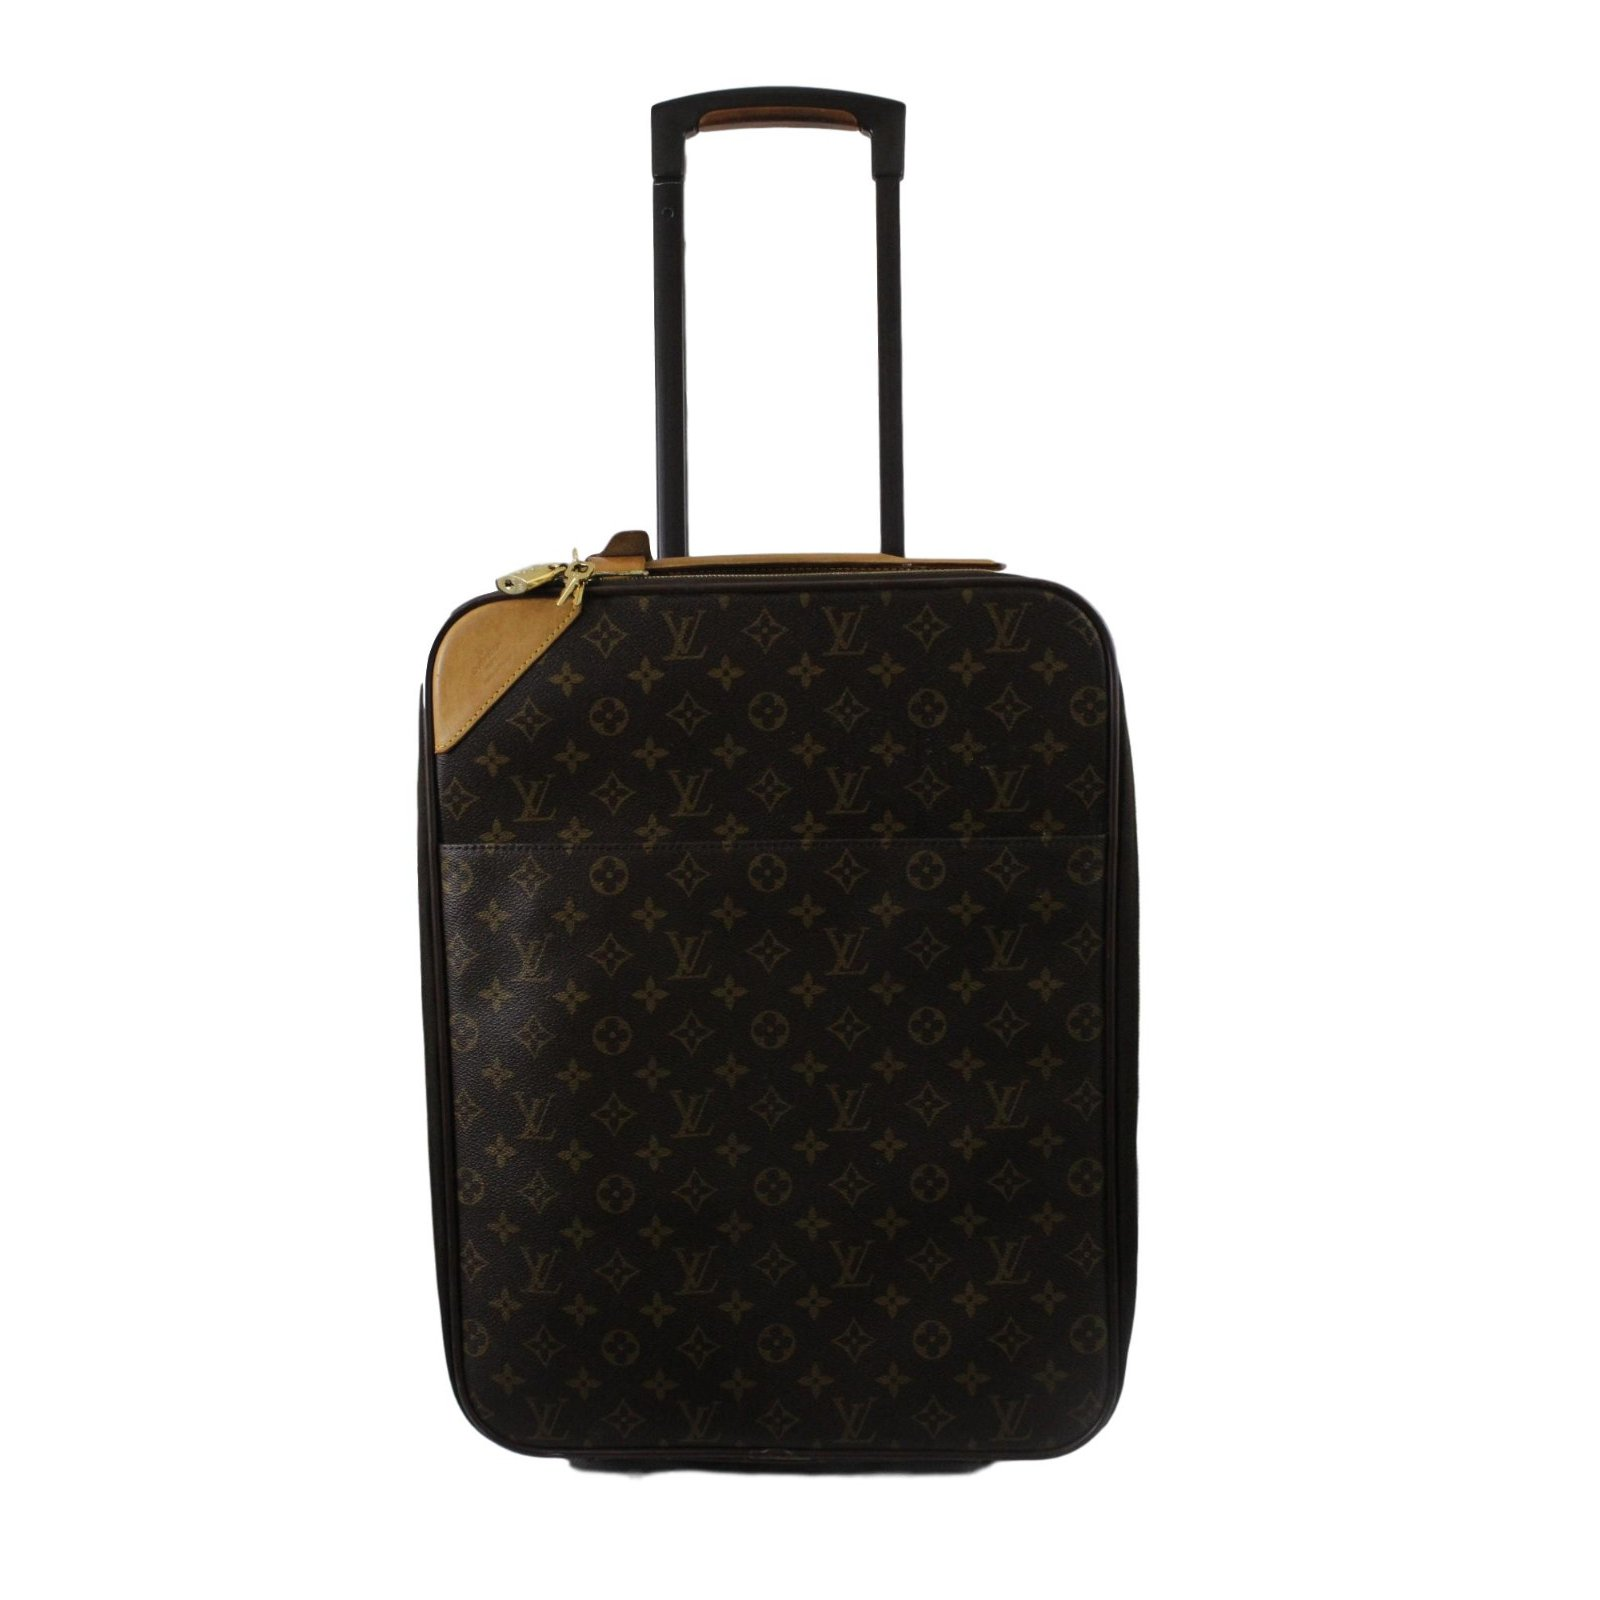 Louis Vuitton Travel Bag Leather Brown Ref 56477